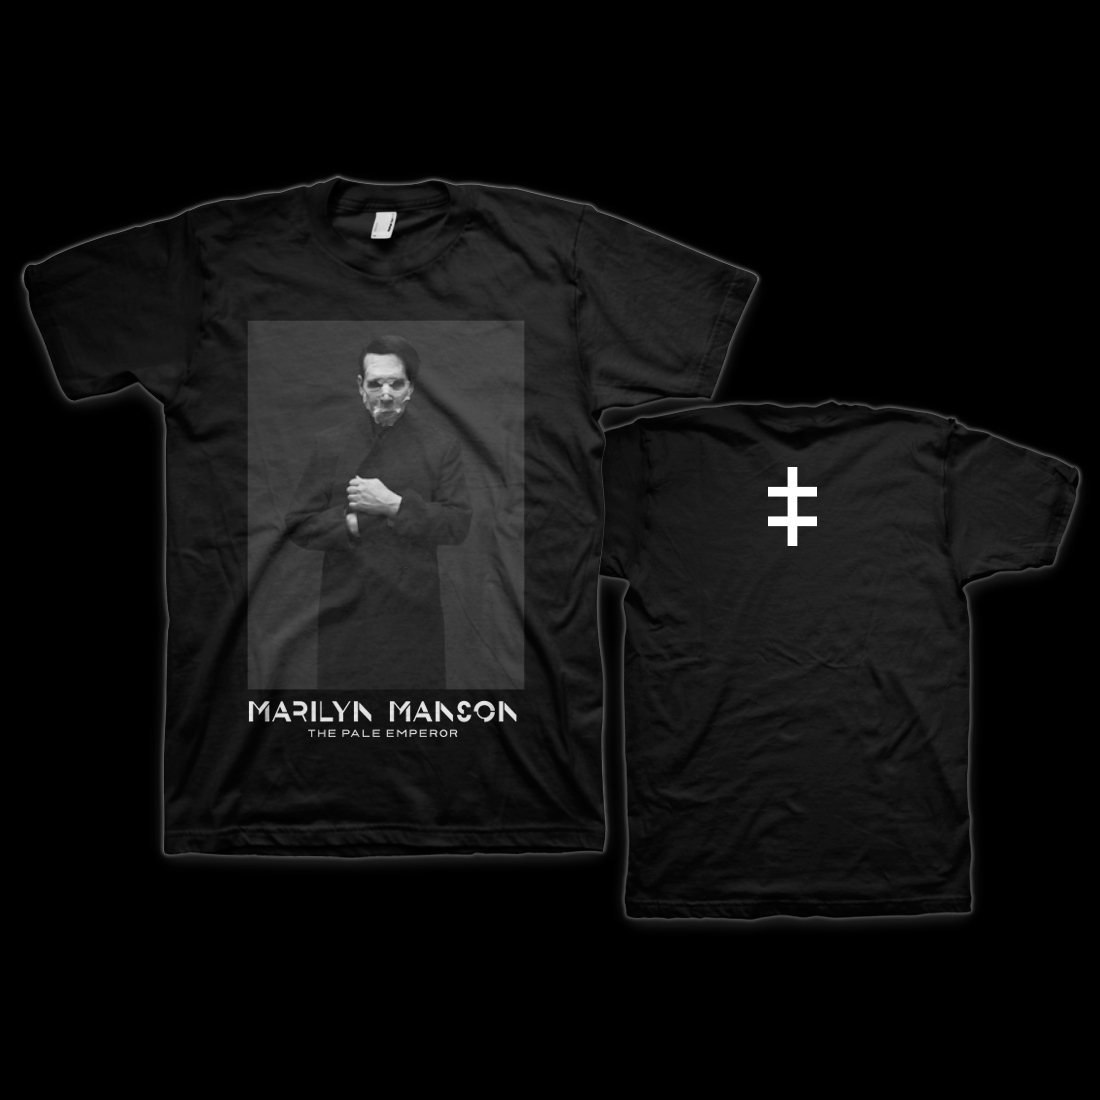 marilyn manson cloaked t shirt shop the musictoday. Black Bedroom Furniture Sets. Home Design Ideas